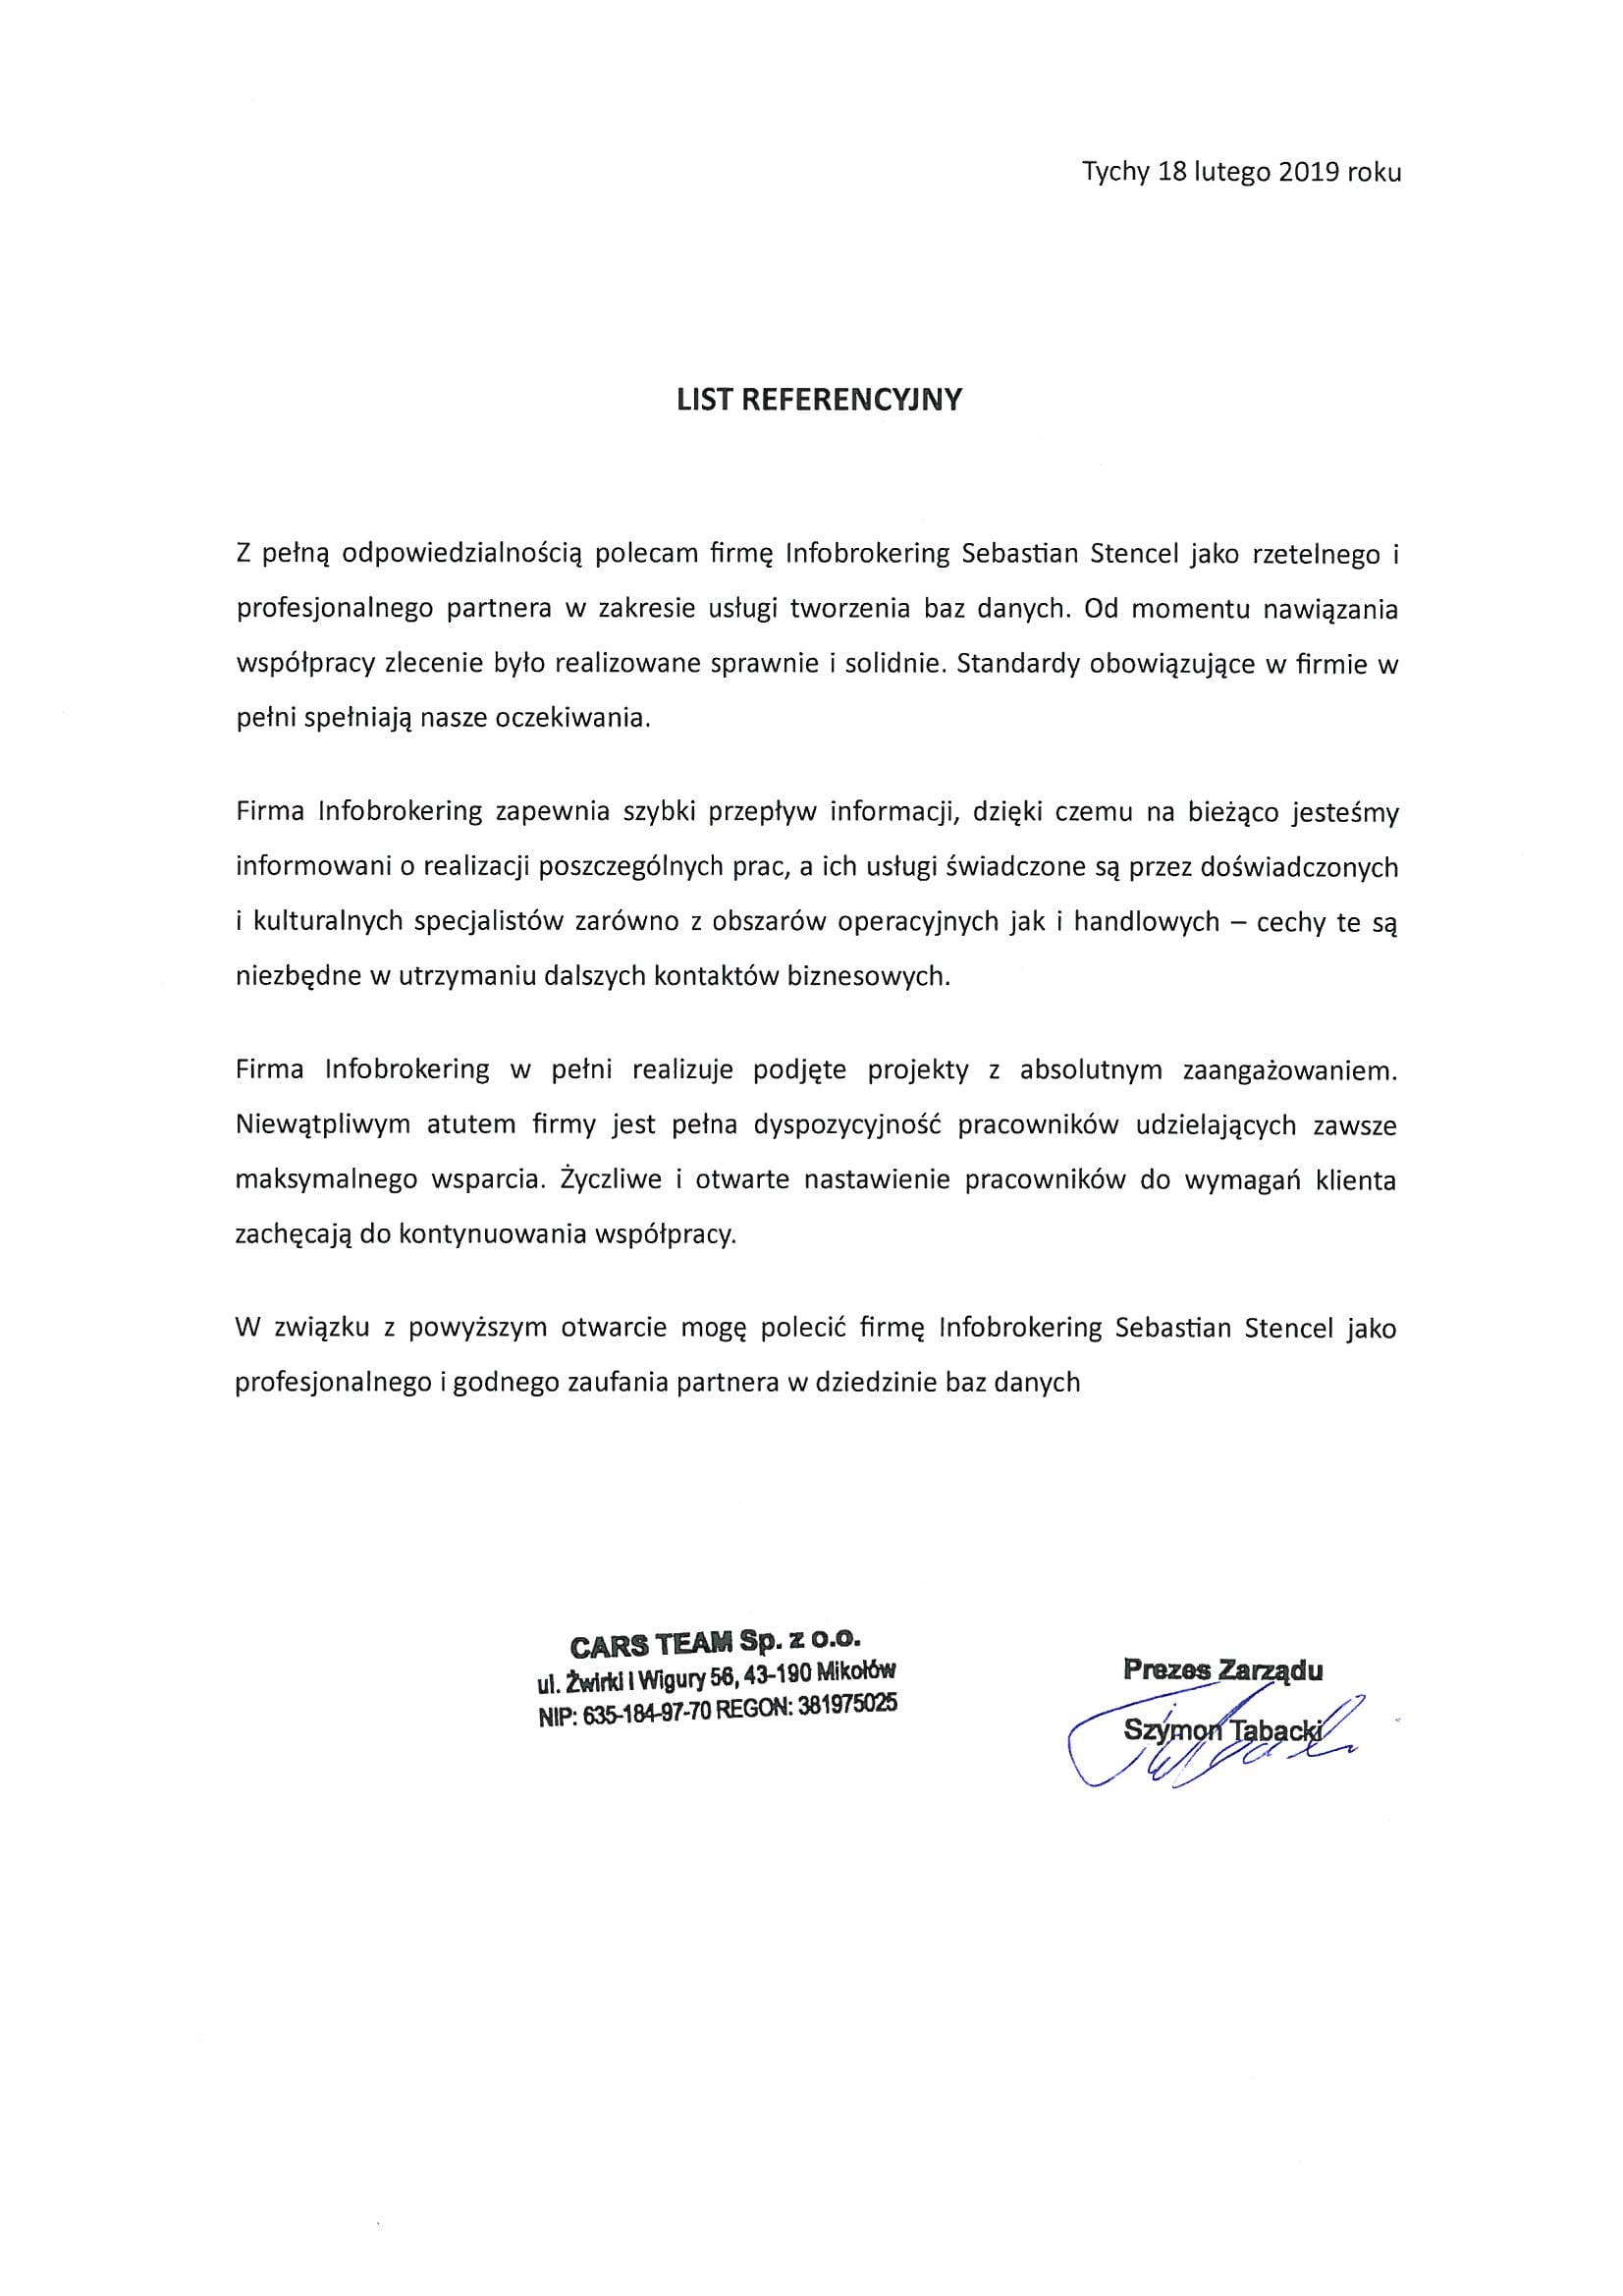 w_ze_List_referencyjny_Cars_Team.jpg